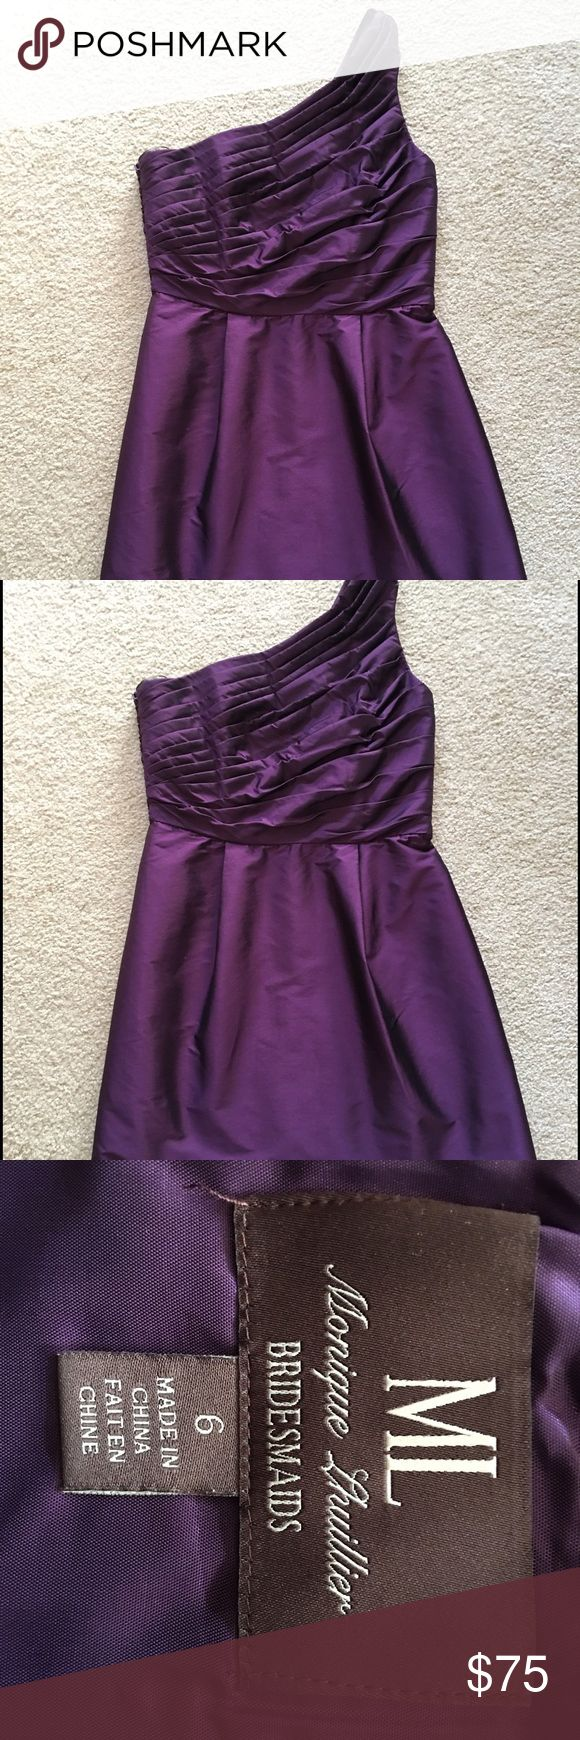 Monique Lhullier One Shoulder Dress Royal Purple bridesmaid dress, worn once and in great condition. Dry cleaned immediately after use. Monique Lhuillier Dresses One Shoulder